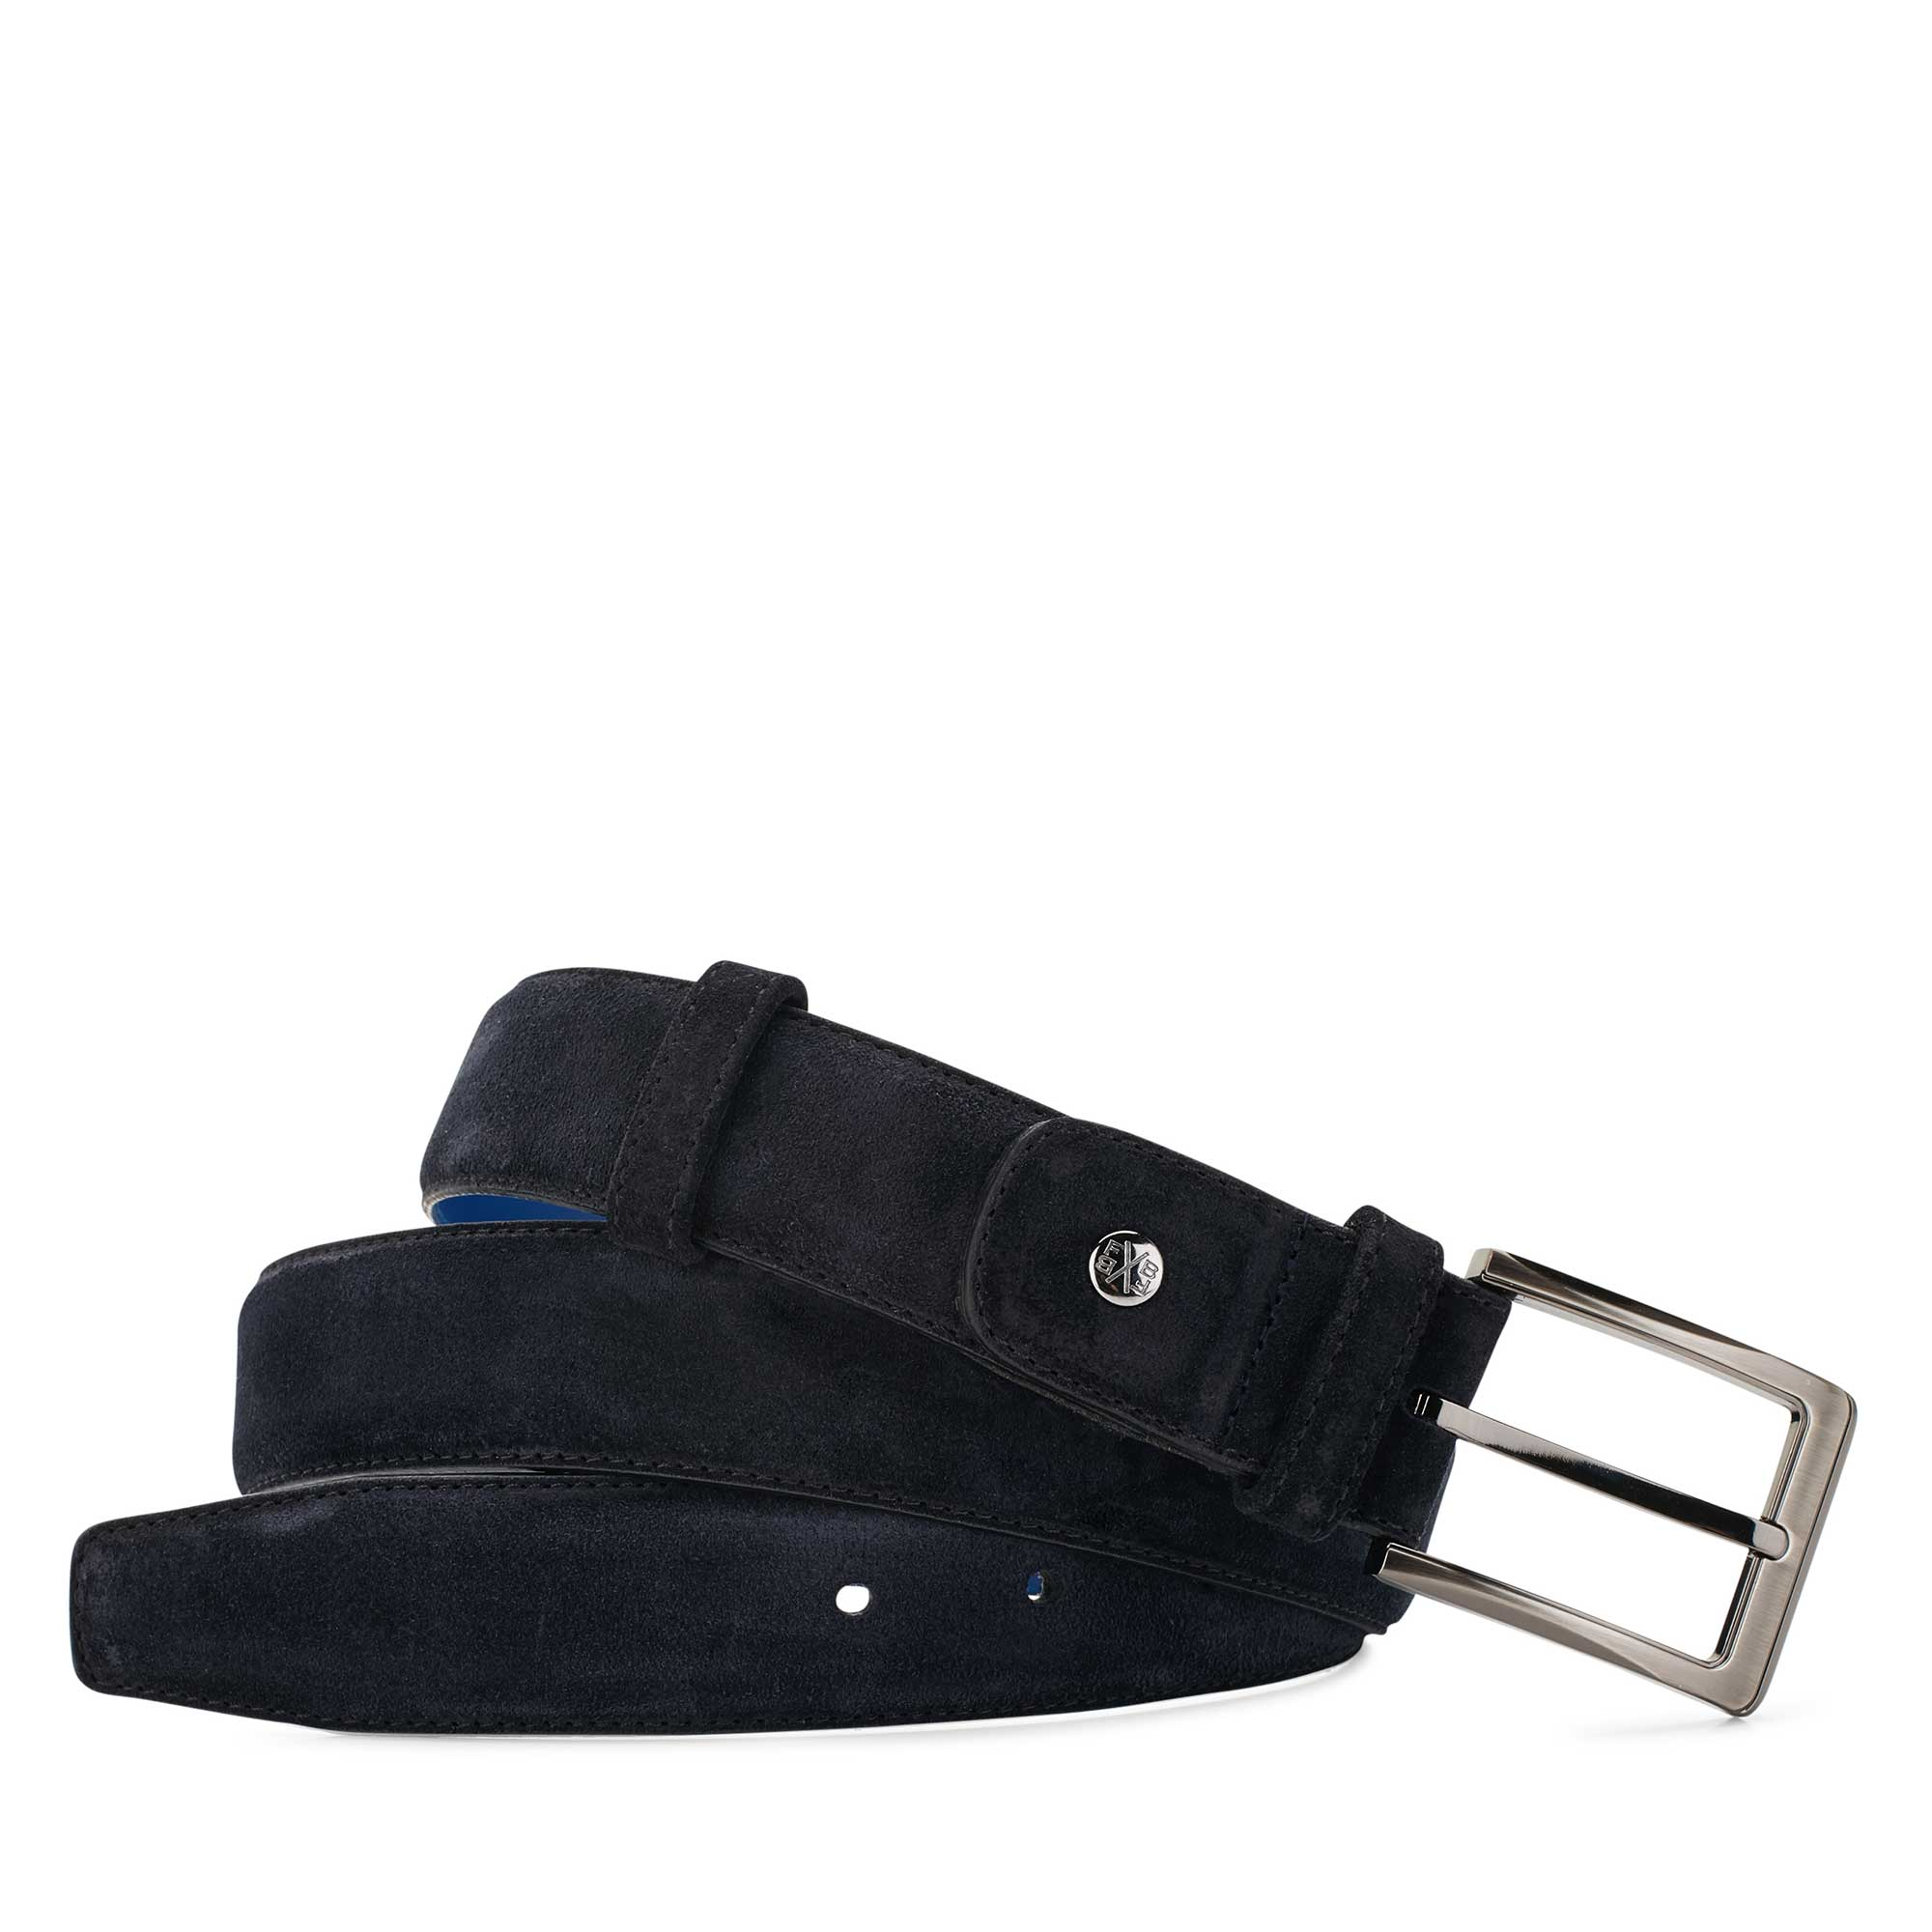 75153/11 - Dark blue calf's leather belt